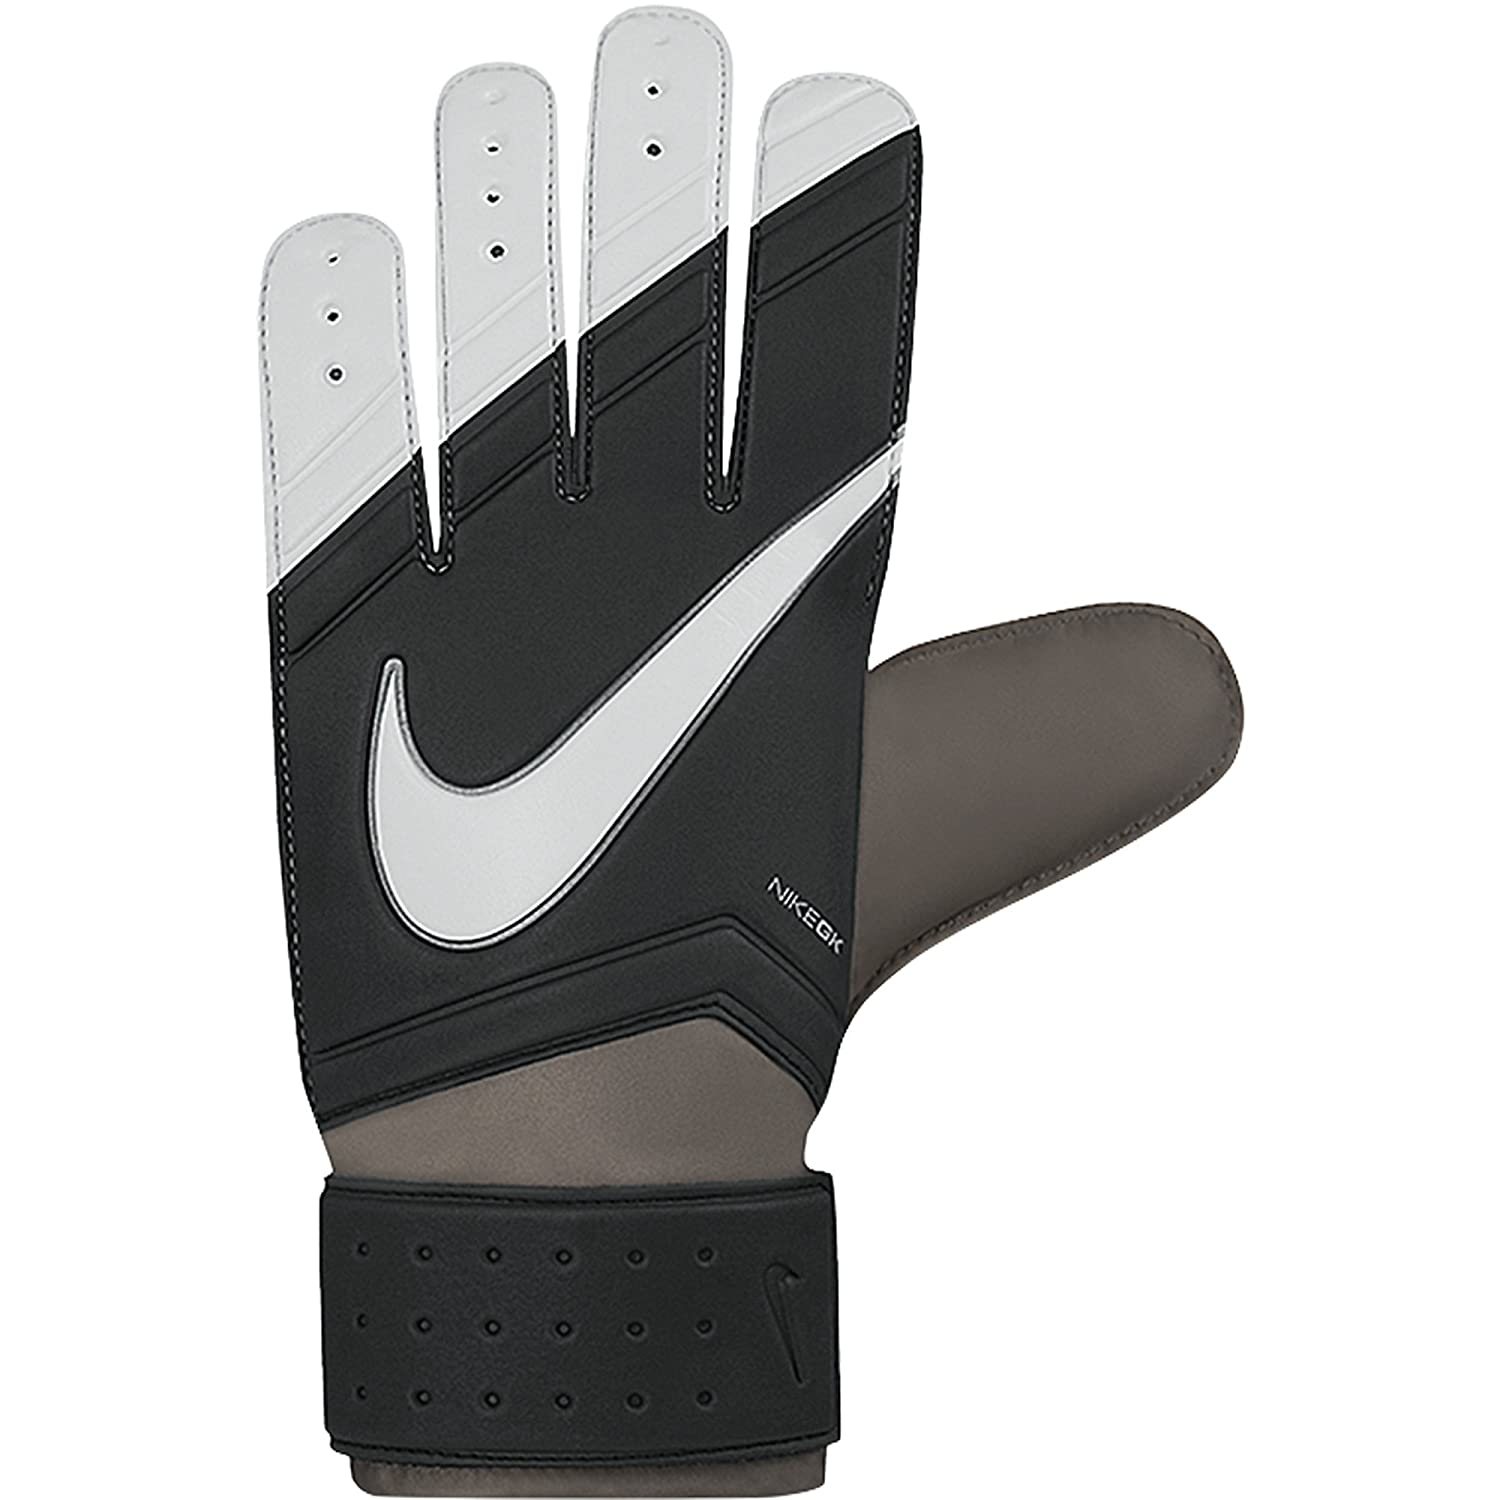 1e652bfff Amazon.com : Nike Youth Match Goalkeeper Gloves Black/White Size 3 : Sports  & Outdoors